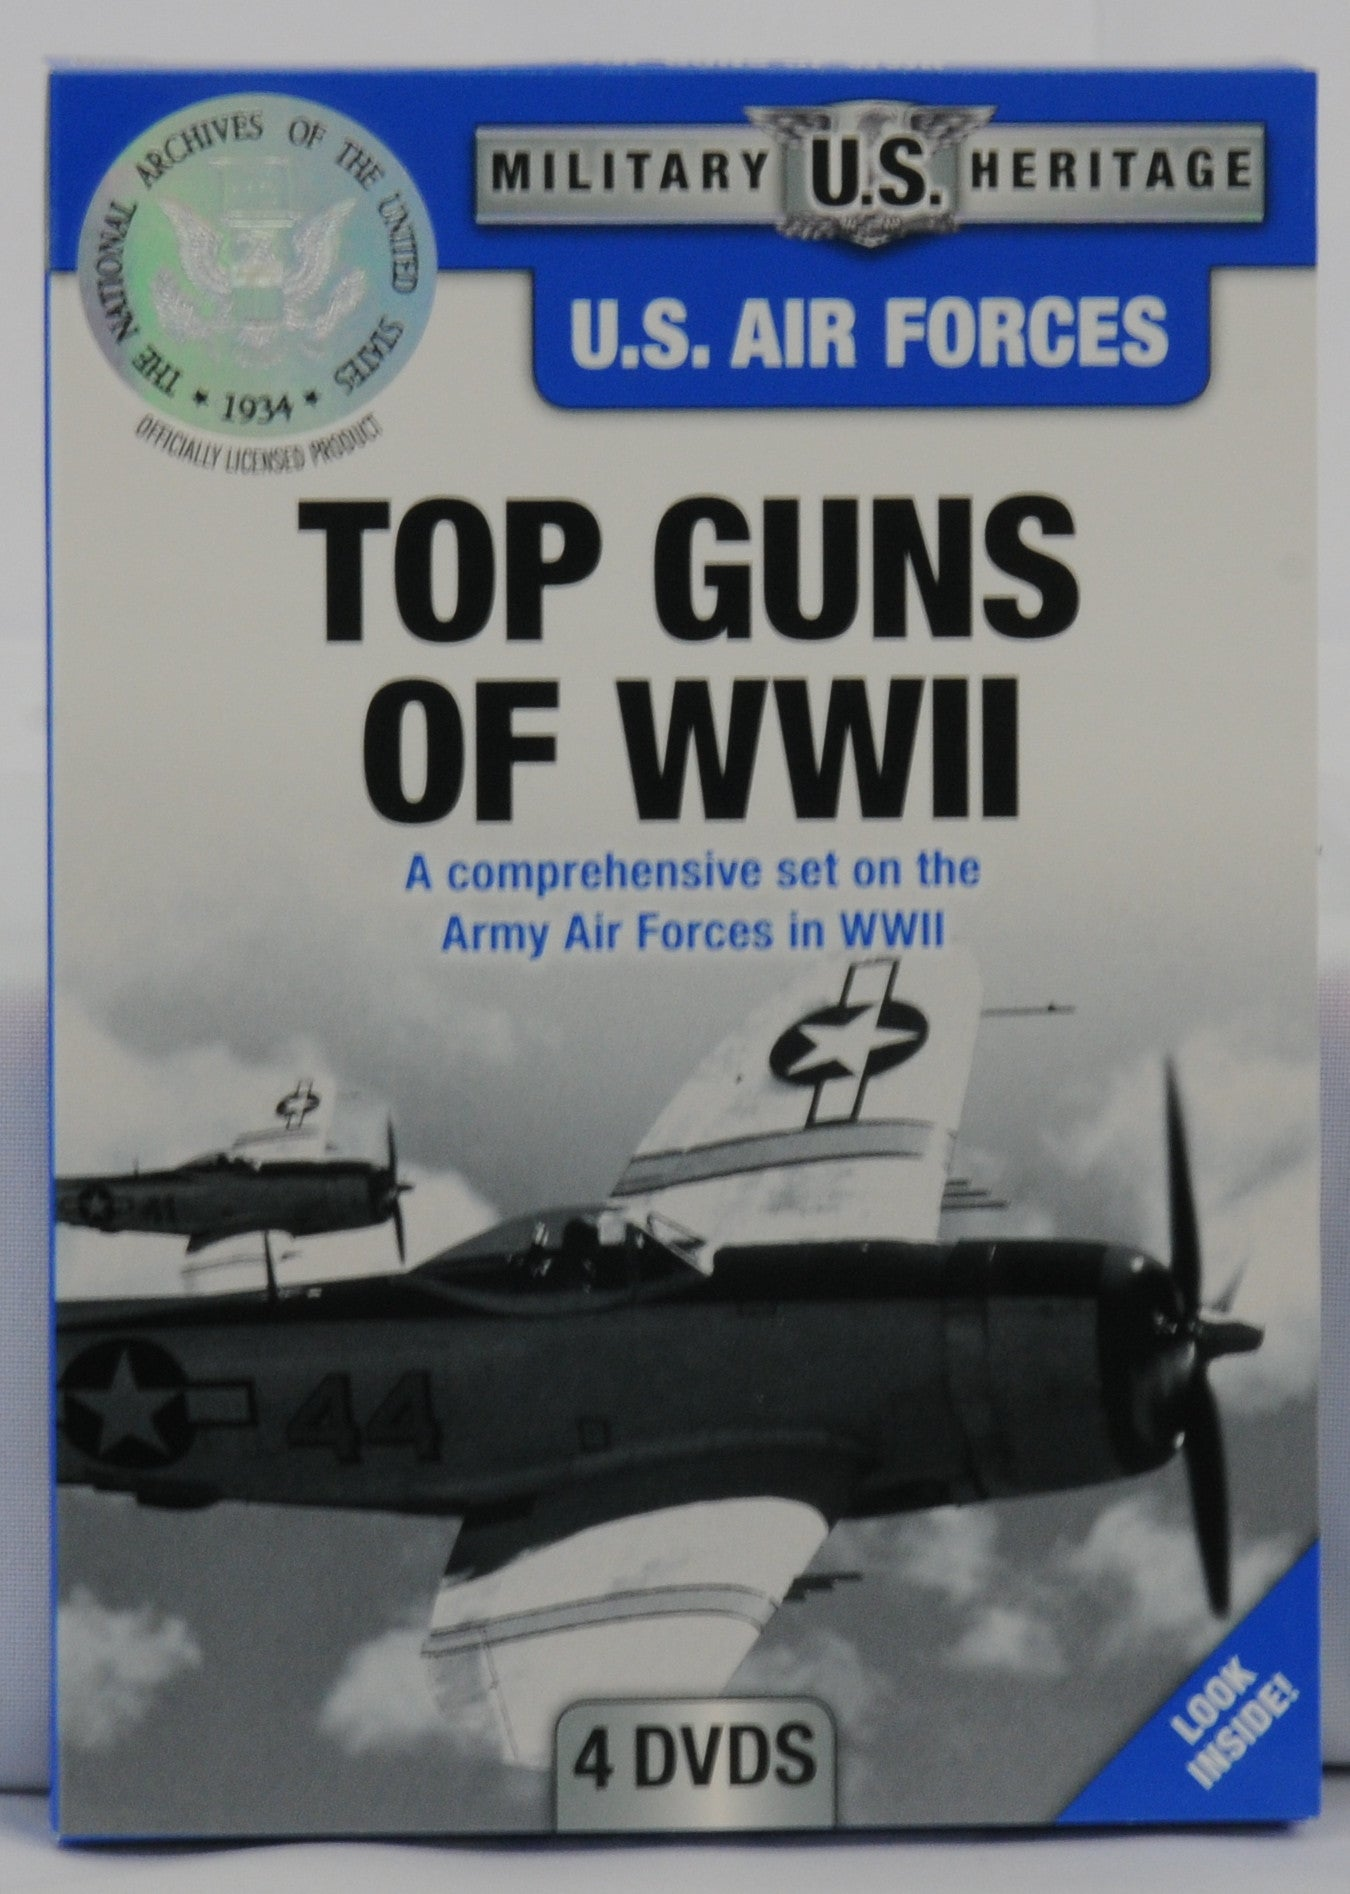 Top Guns of WWII DVD